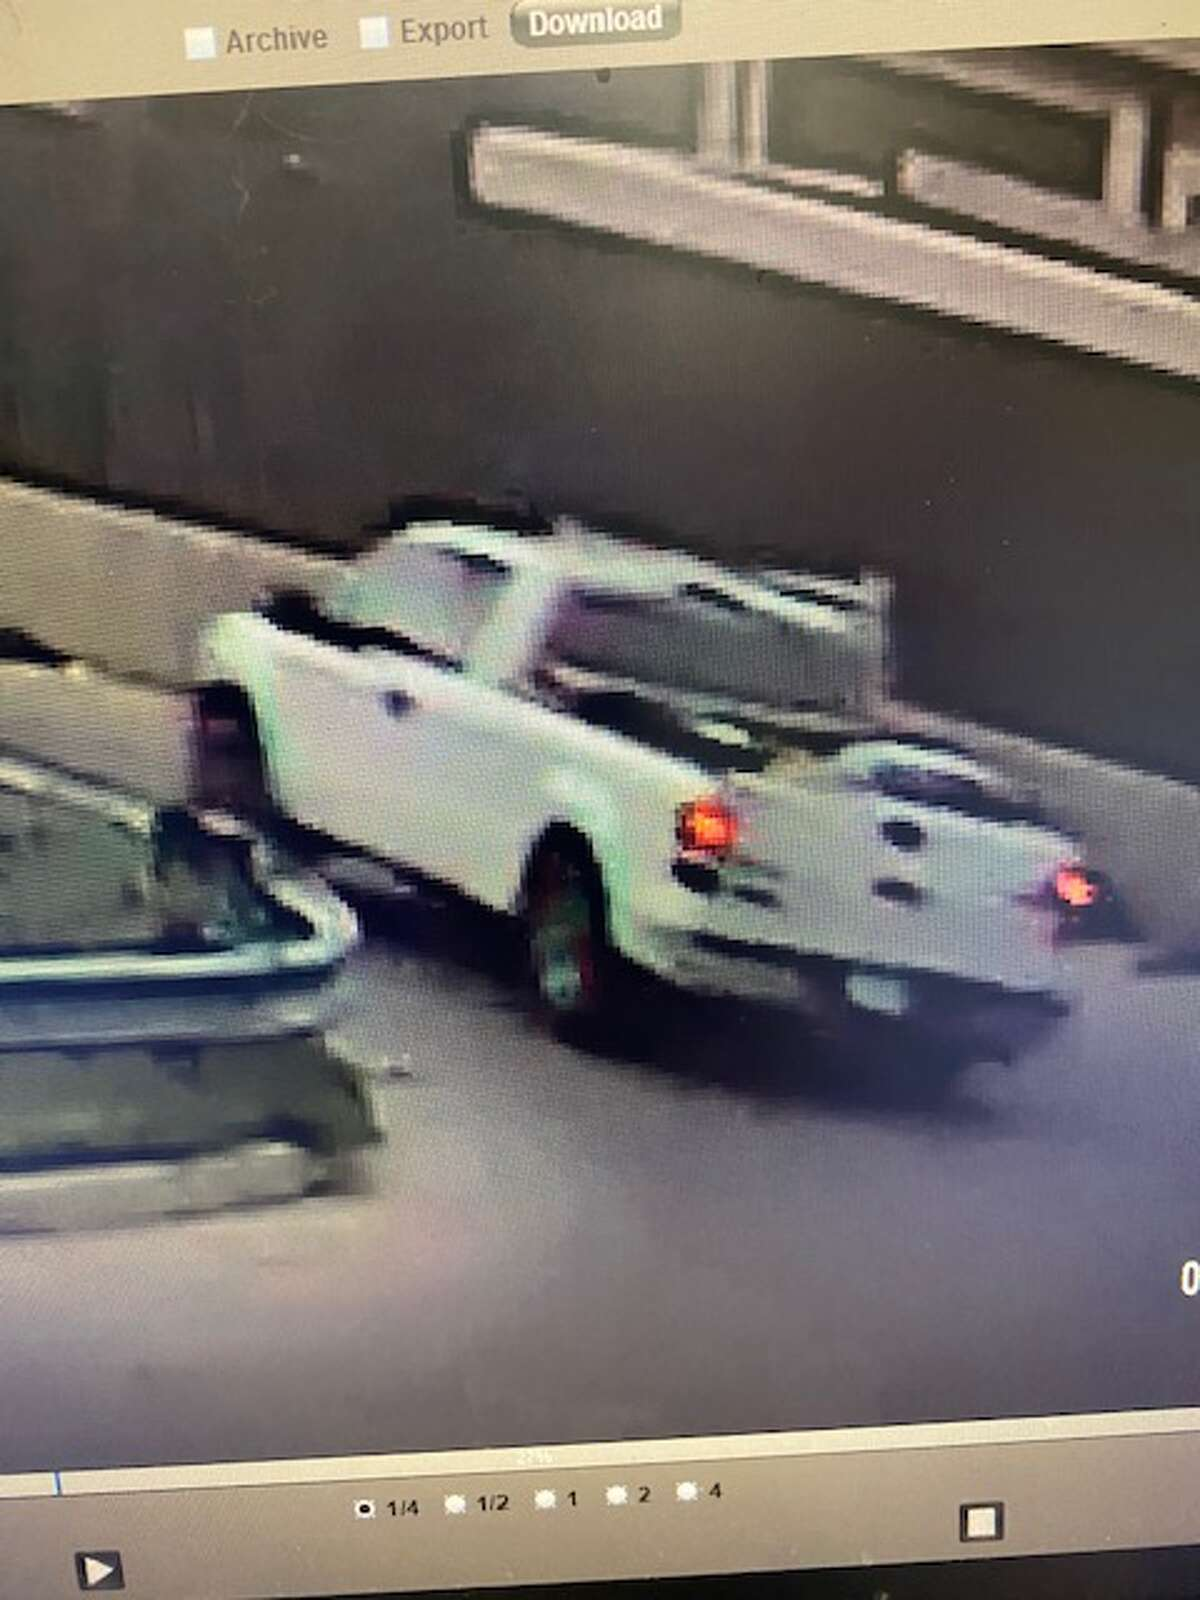 Midland police are looking for a vehicle involved in an accident with a pedestrian late Wednesday. The actor vehicle was last seen traveling south on Midland Drive near Cuthbert and is described as an older model white Ford F-150 with a white headache rack and a toolbox in the truck bed.